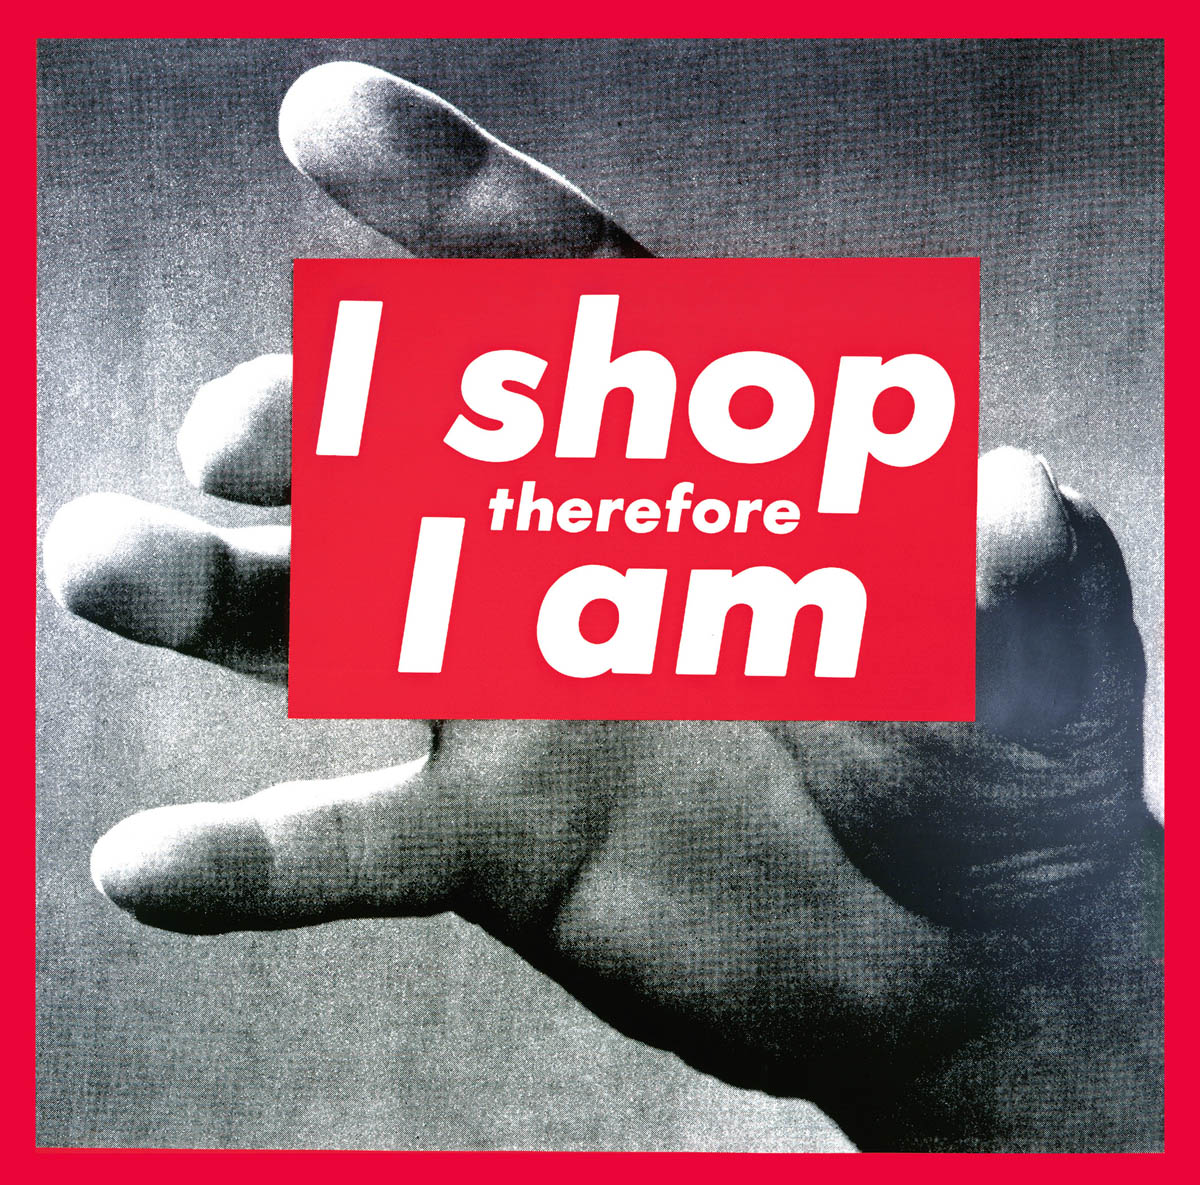 barbara kruger, Untitled (I shop therefore I am), 1989